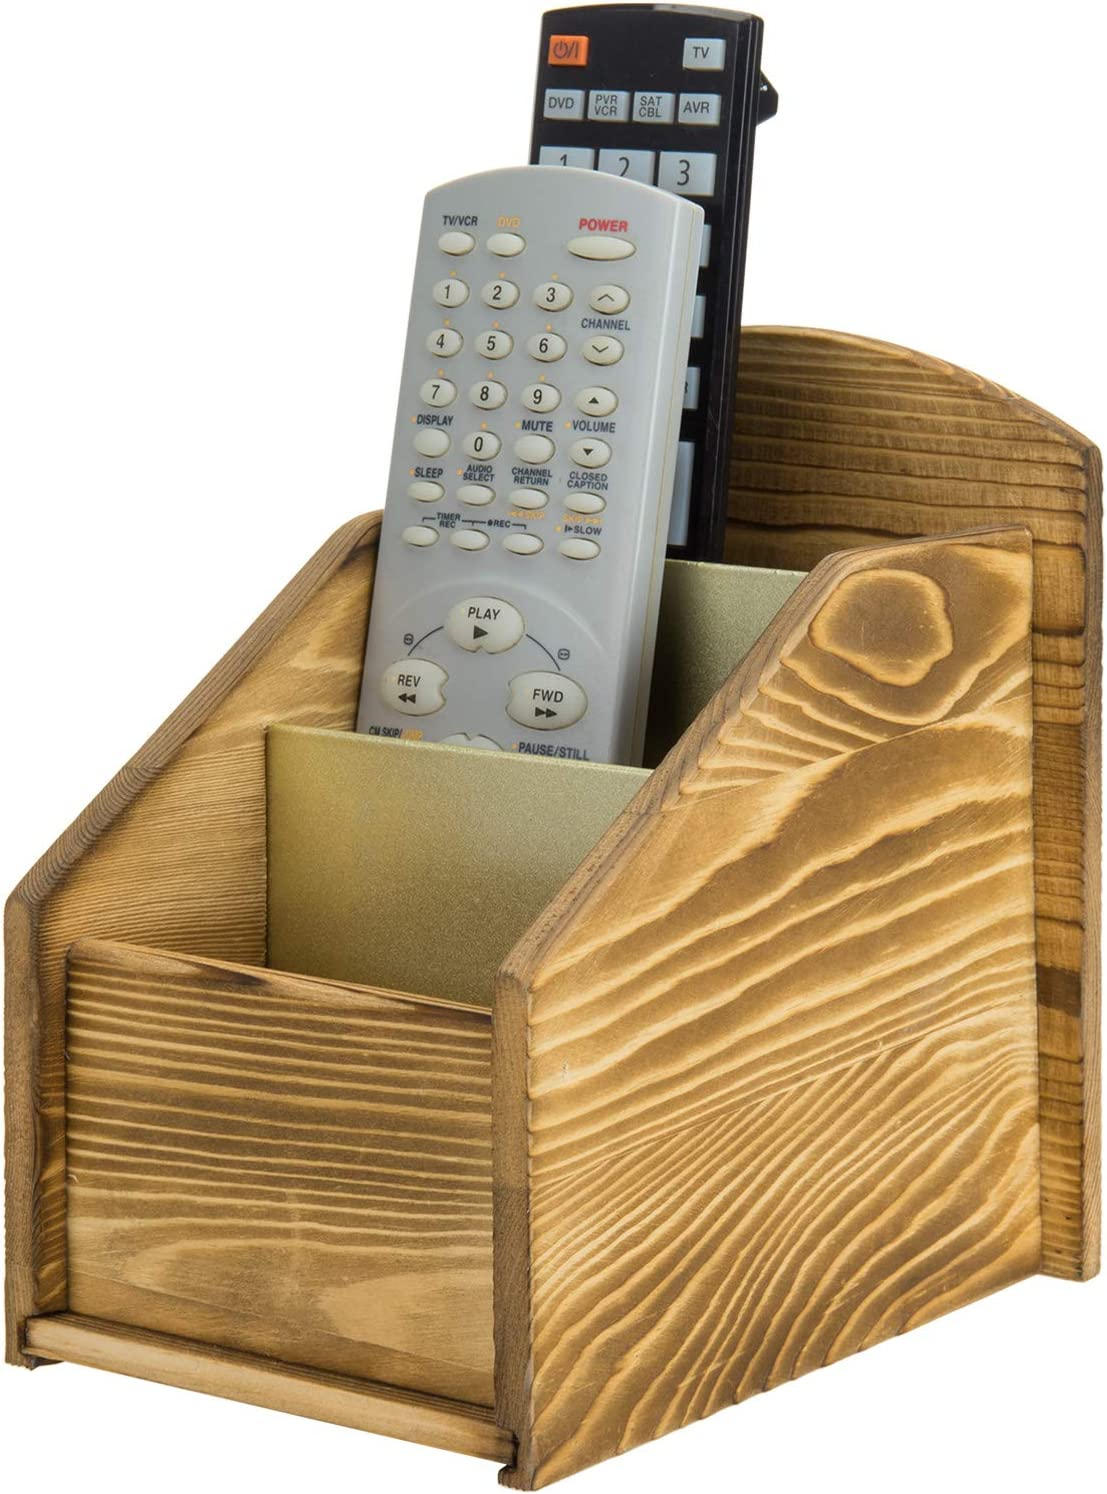 MyGift 3 Slot Remote Control Holder Wood with Rustic Caddy Ranking TOP9 Now free shipping Burnt